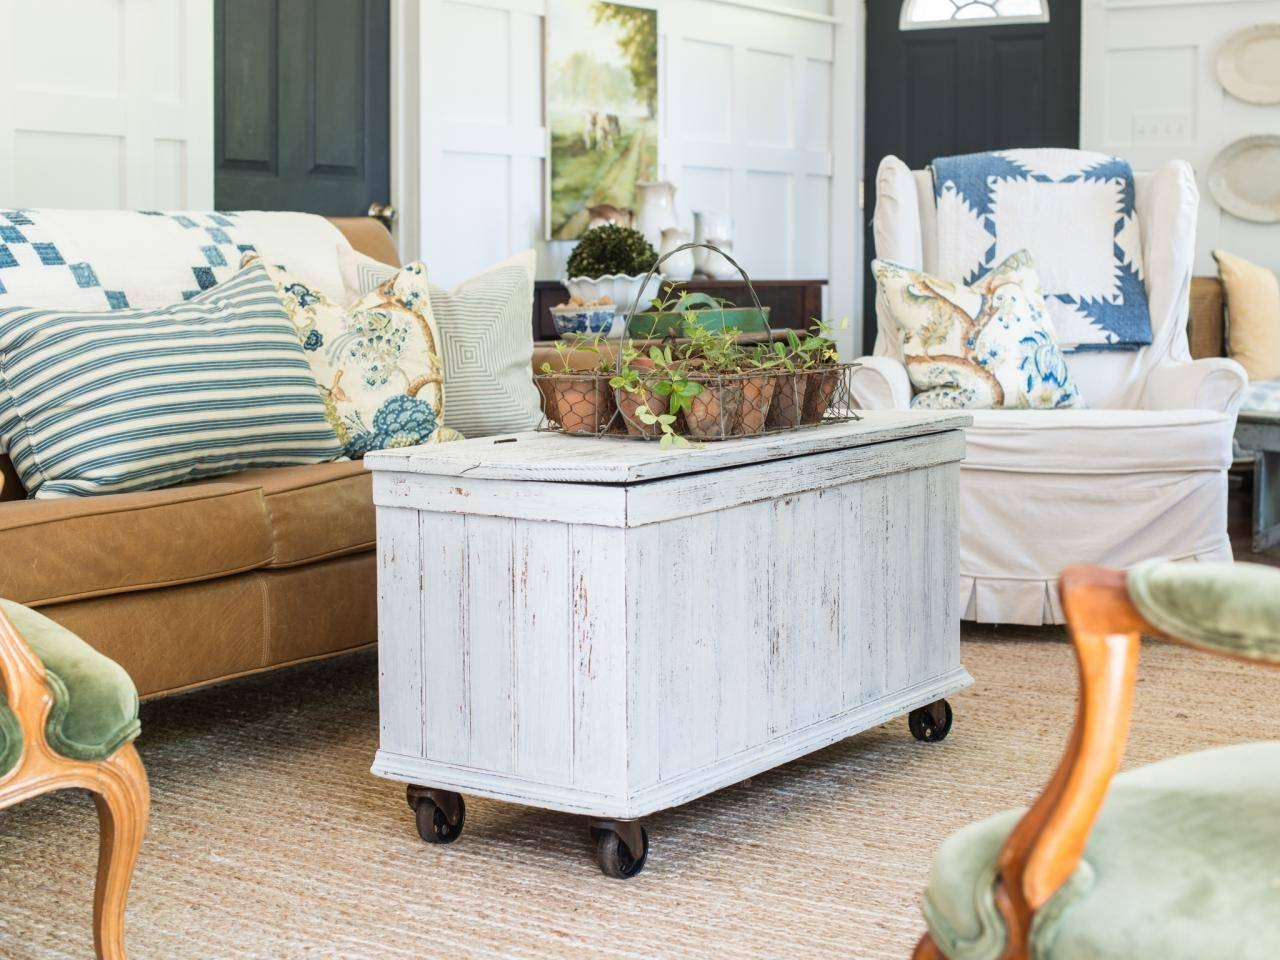 Add Casters To An Antique Trunk For A Mobile Coffee Table | Hgtv with Old Trunks As Coffee Tables (Image 2 of 30)